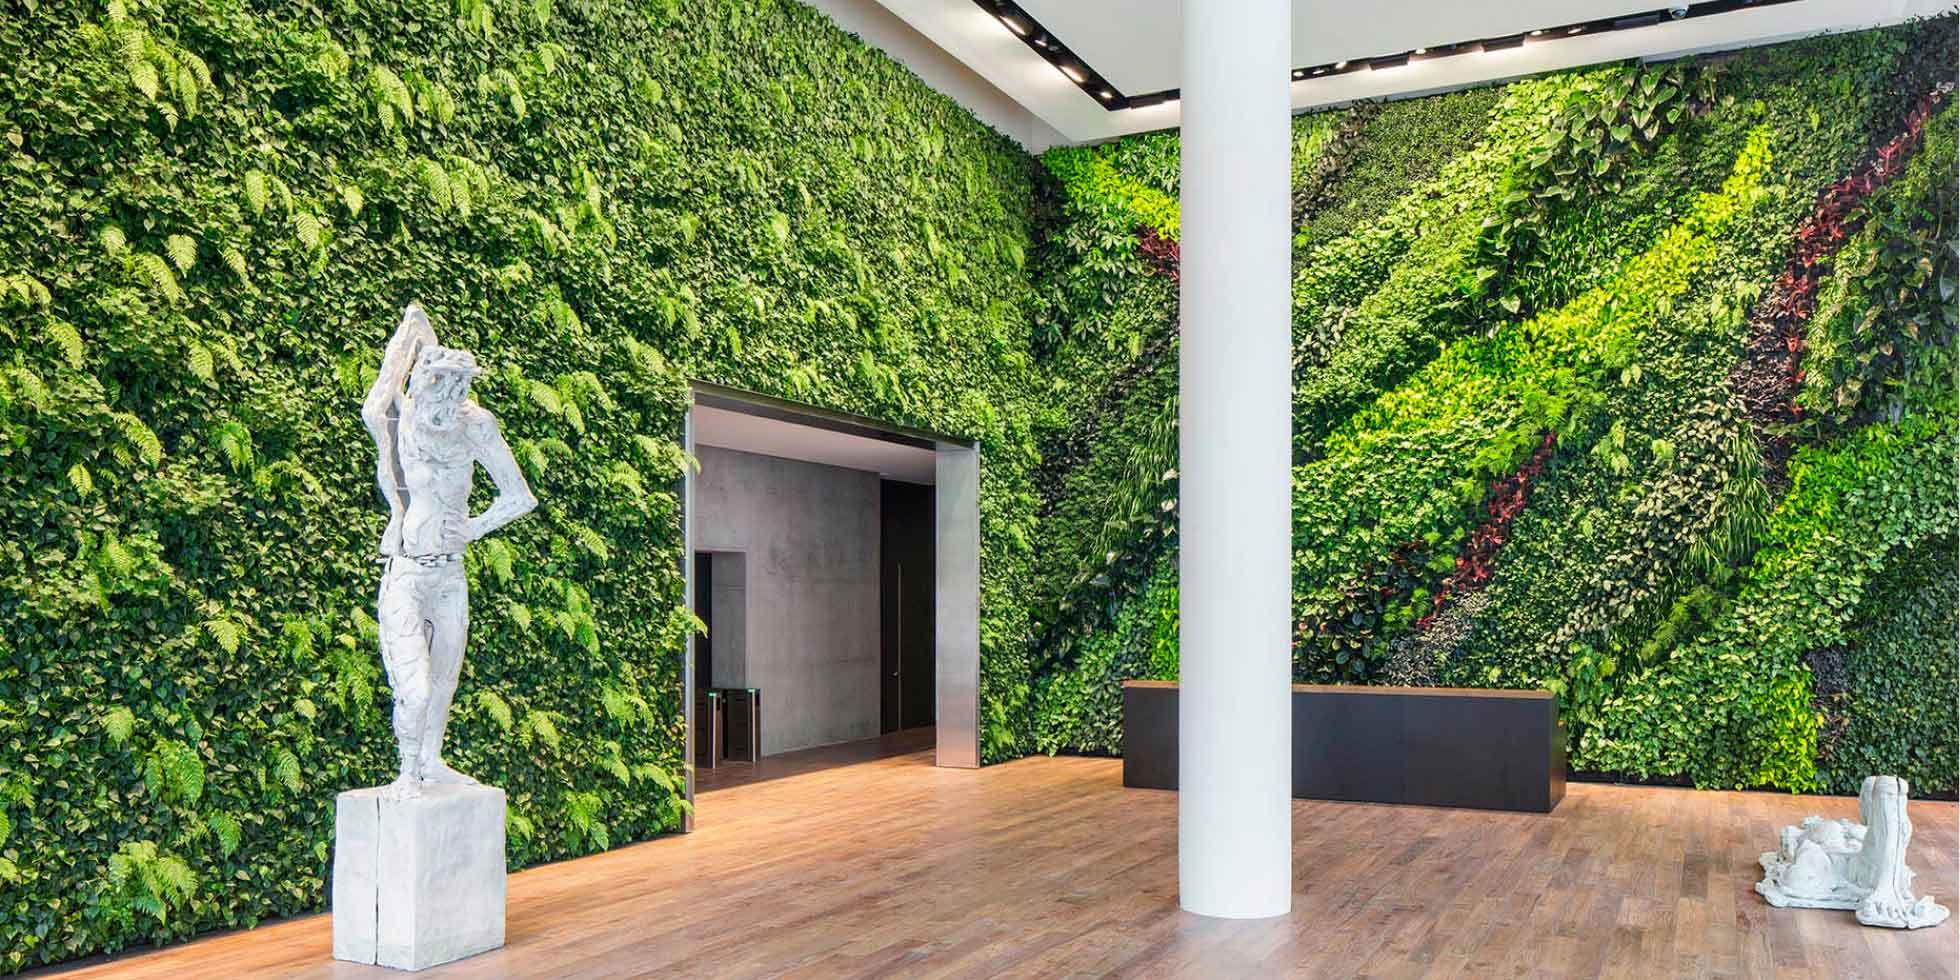 Foundry Square III Living Wall by Habitat Horticulture - View 1